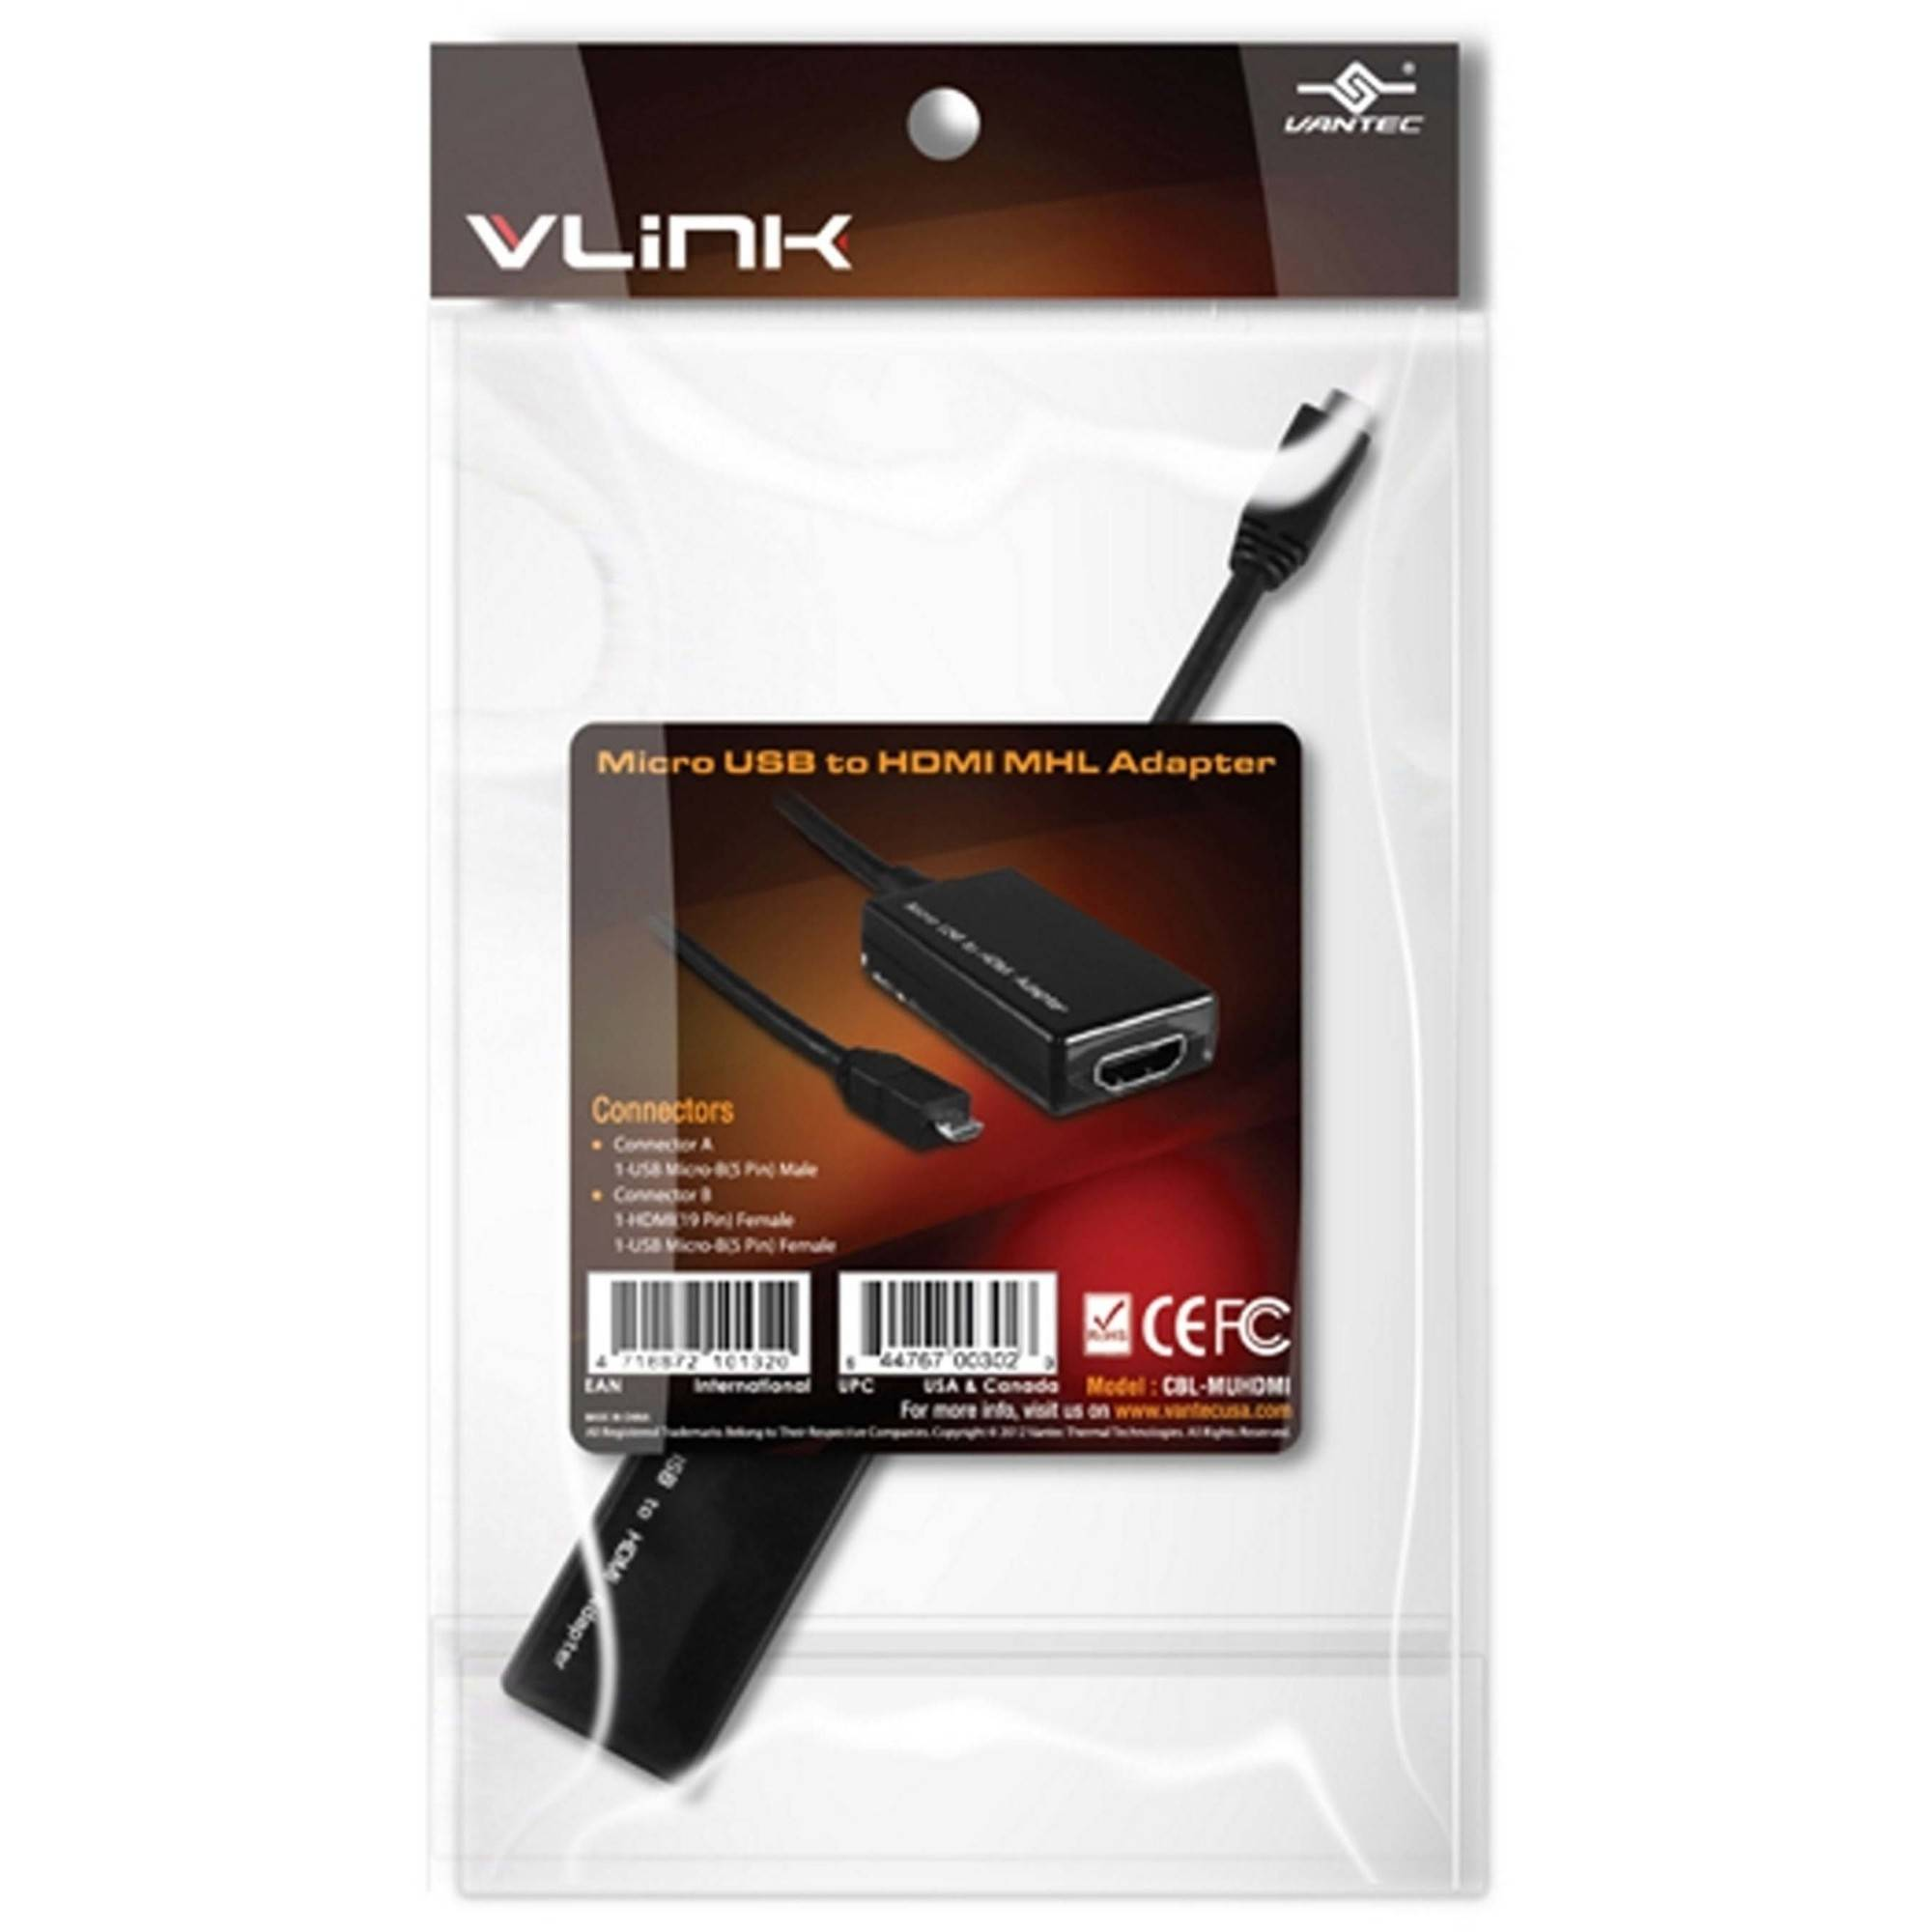 Vantec CBL-MUHDMI microUSB to HDMI MHL Adapter, Black